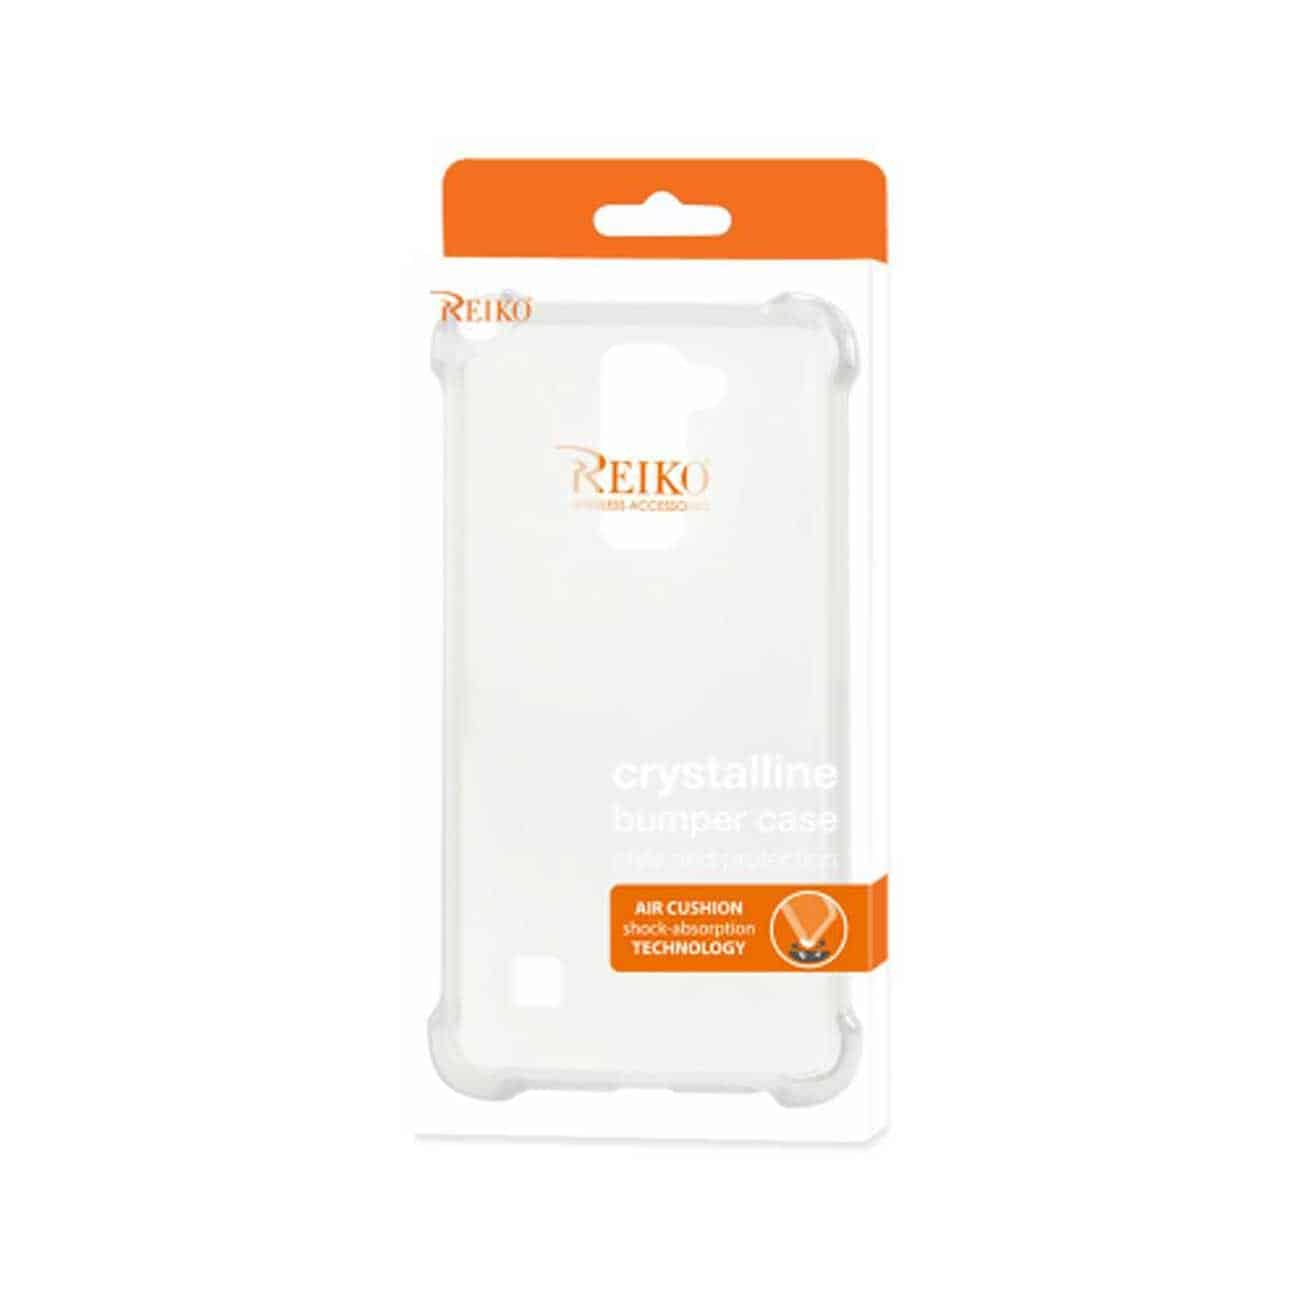 LG STYLUS 2 CLEAR BUMPER CASE WITH AIR CUSHION PROTECTION IN CLEAR